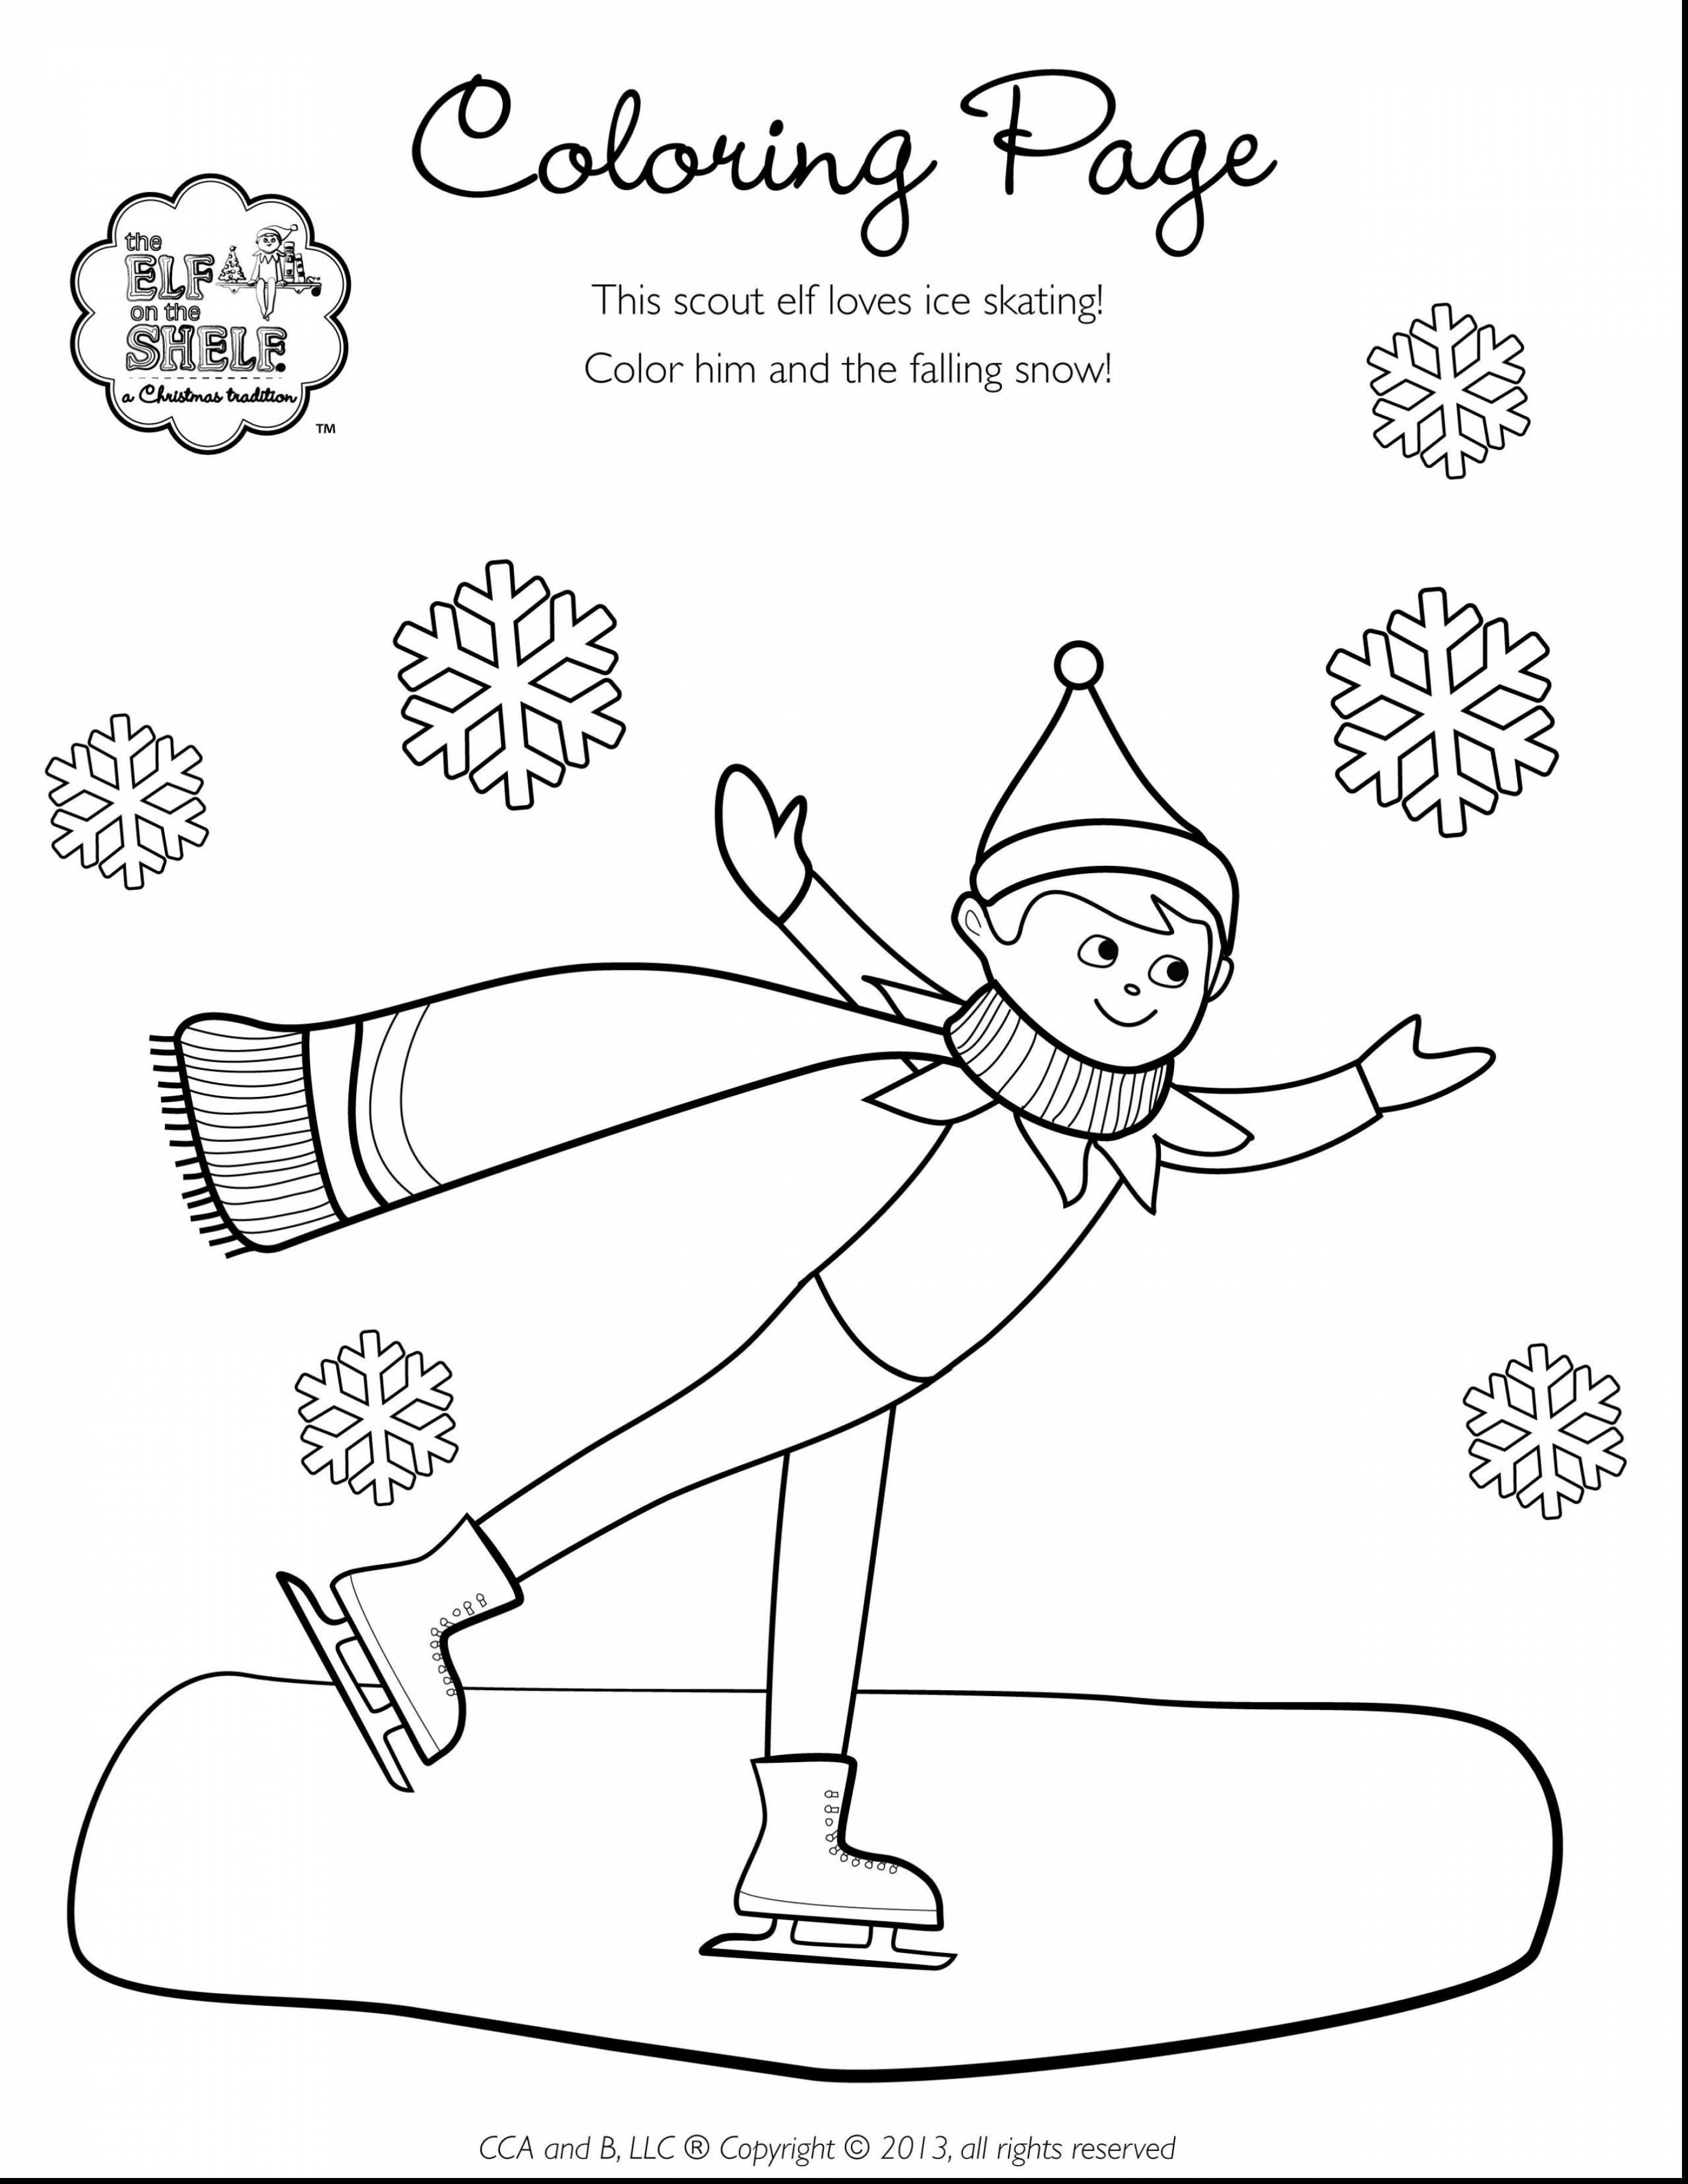 Elf On The Shelf Coloring Pages New Coloring Pages Elf Coloring Pages Printable Christm Christmas Coloring Pages Mermaid Coloring Pages New Year Coloring Pages